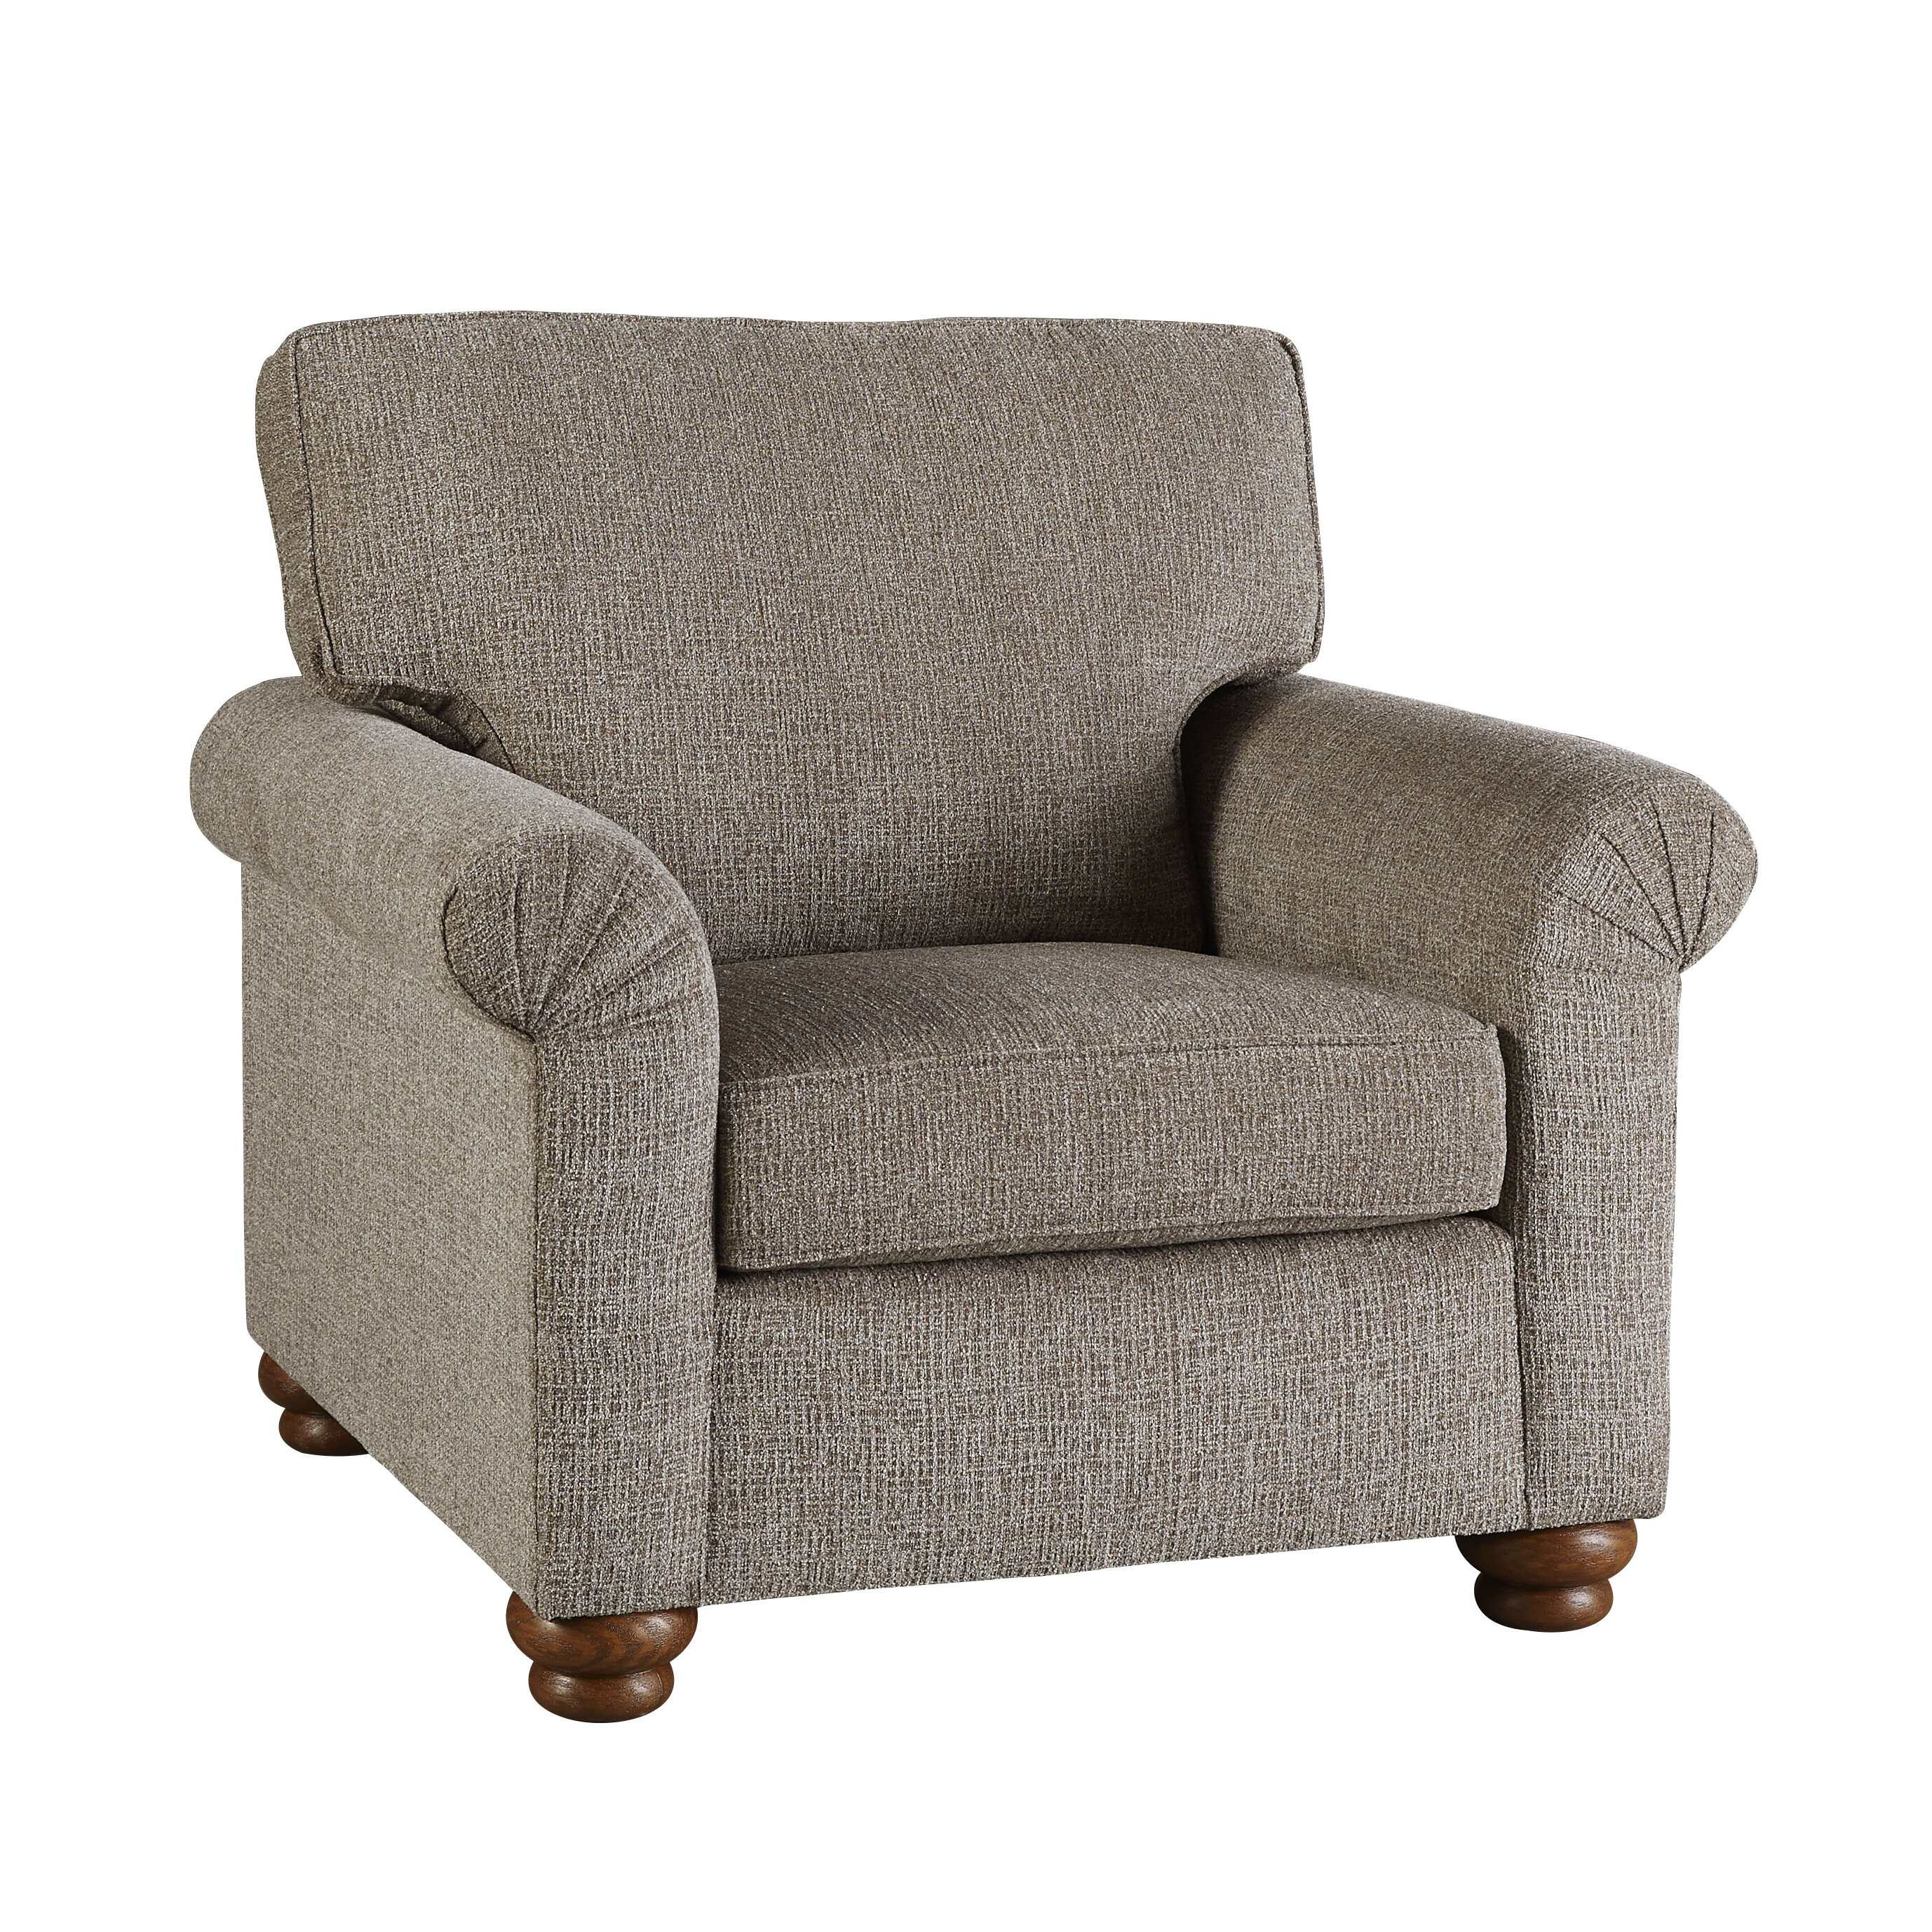 Superieur Alcott Hill Branch Upholstered Armchair | Wayfair